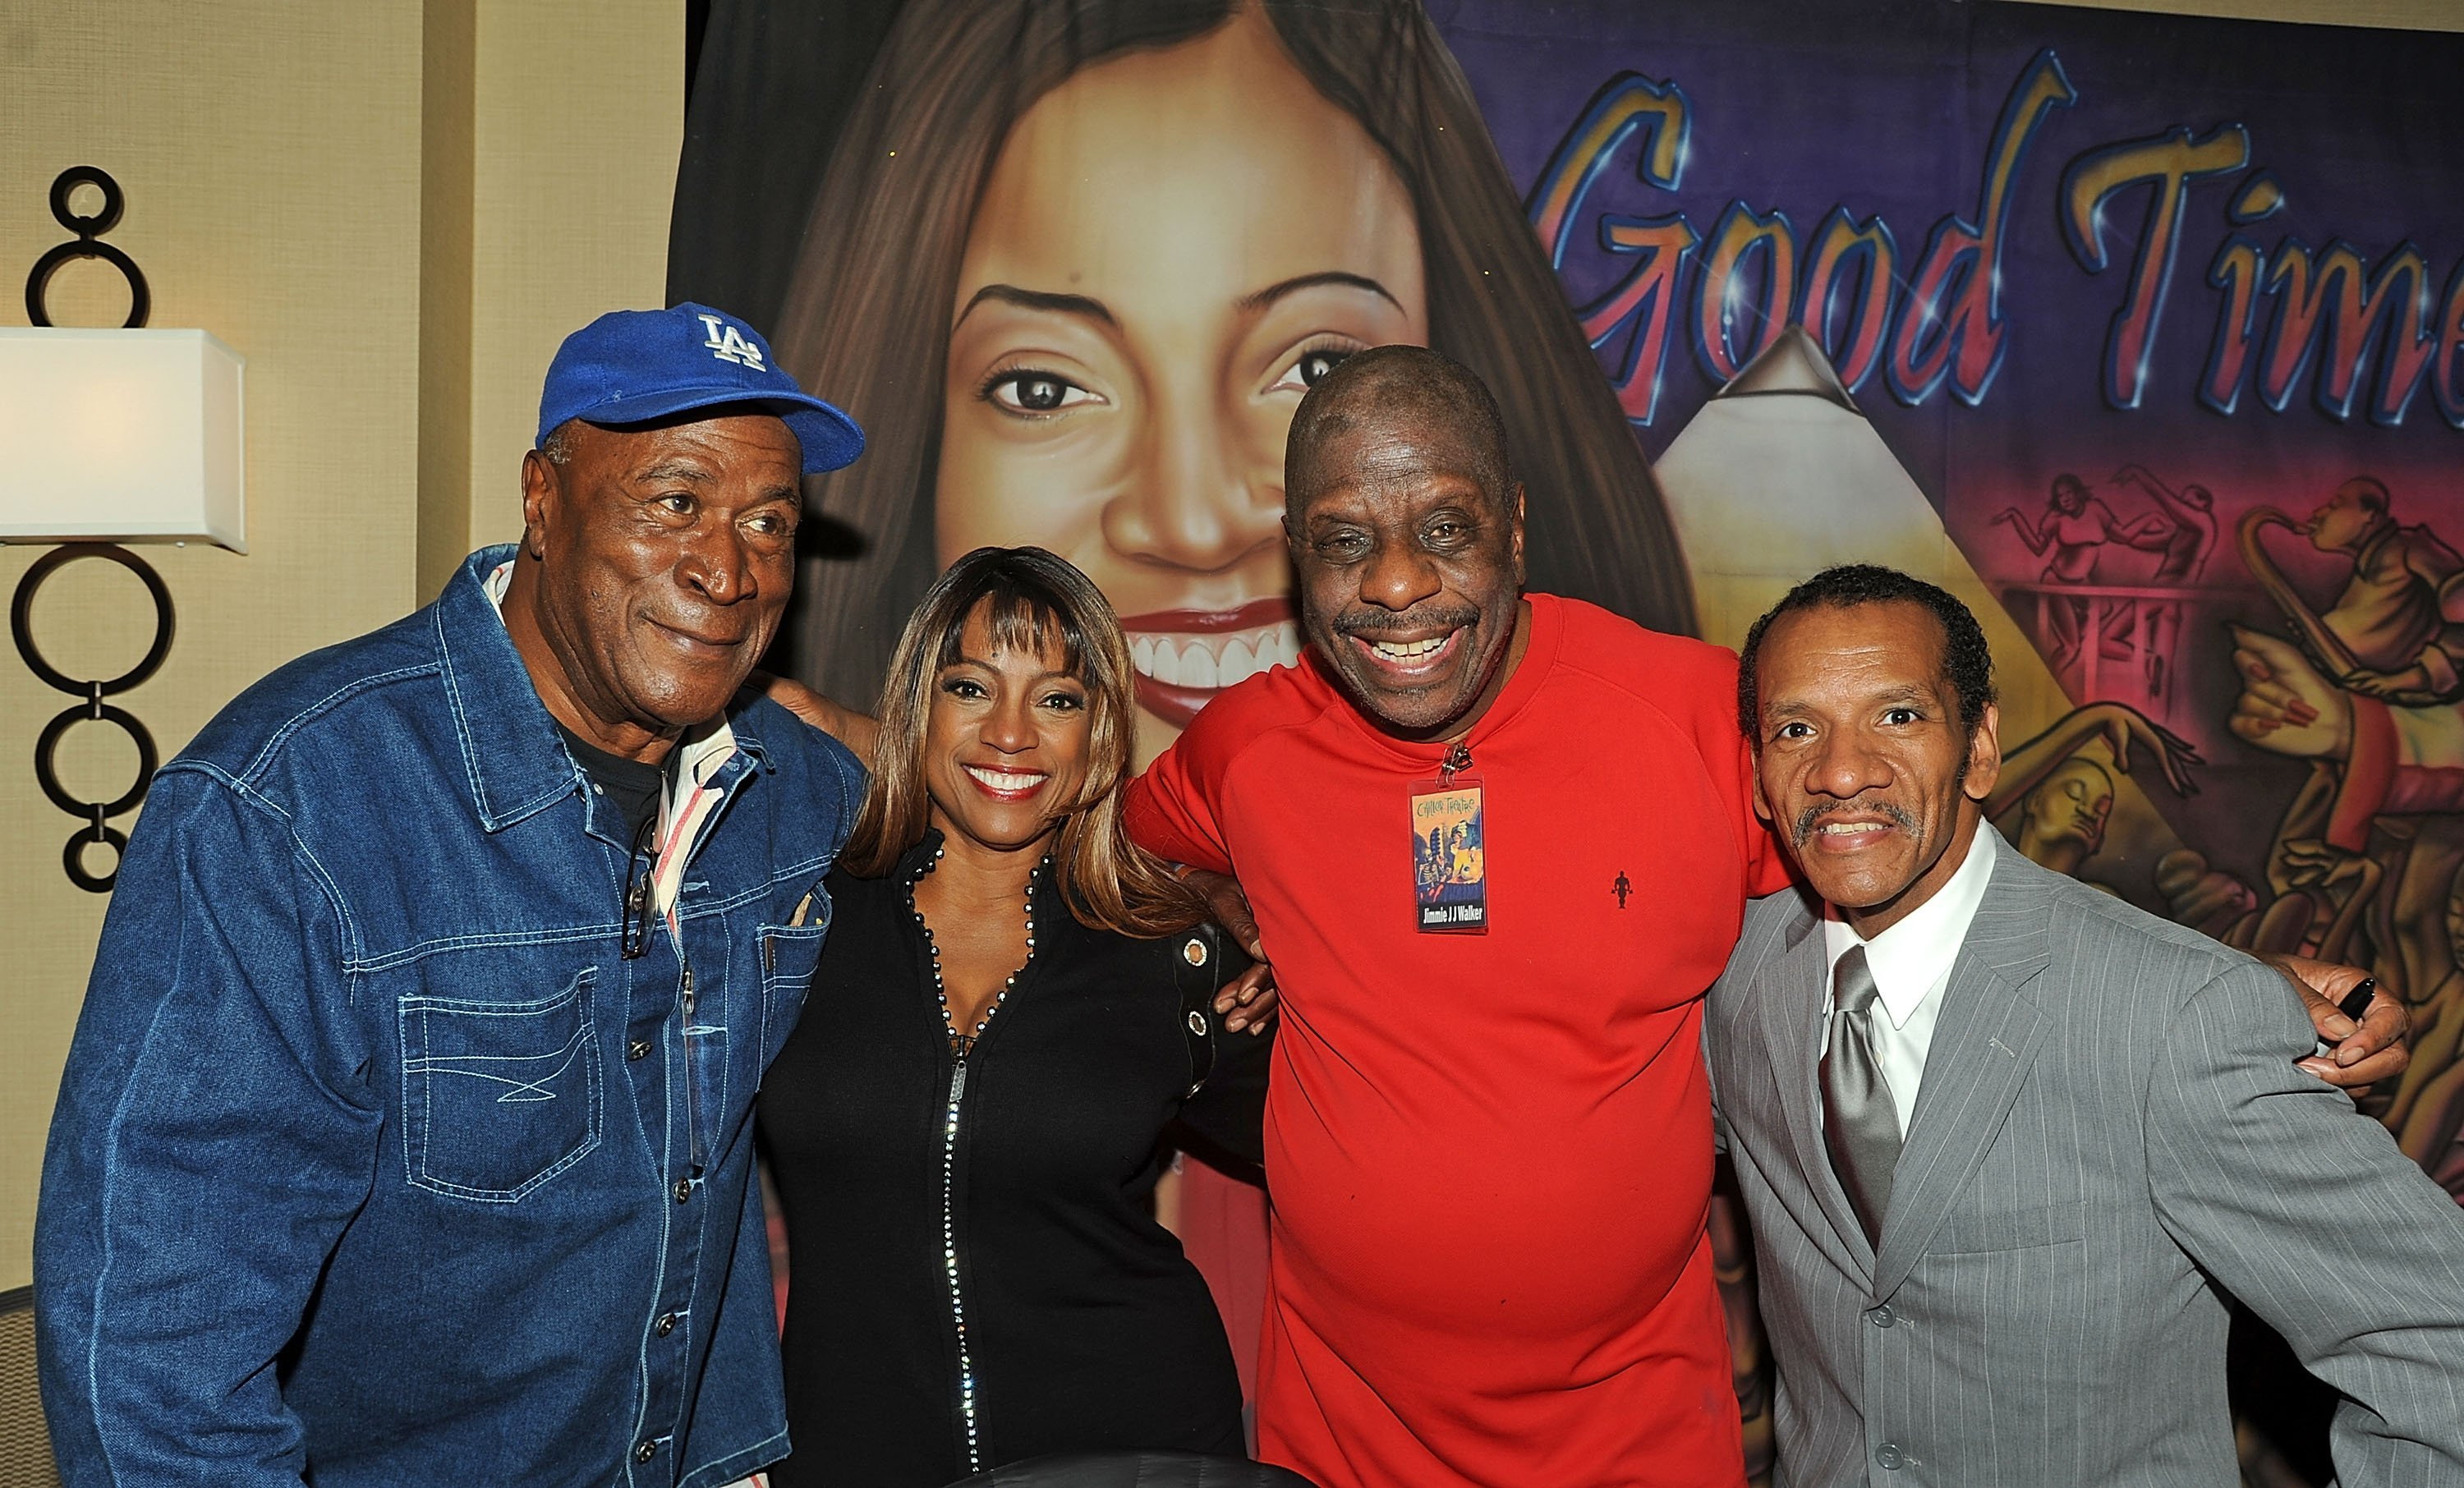 "John Amos, Bern Nadette Stanis, Jimmie JJ Walker and Ralph Carter of "" Good Times"" reunite at Day 1 of the Chiller Theatre Expo at Sheraton Parsippany Hotel on October 24, 2014 